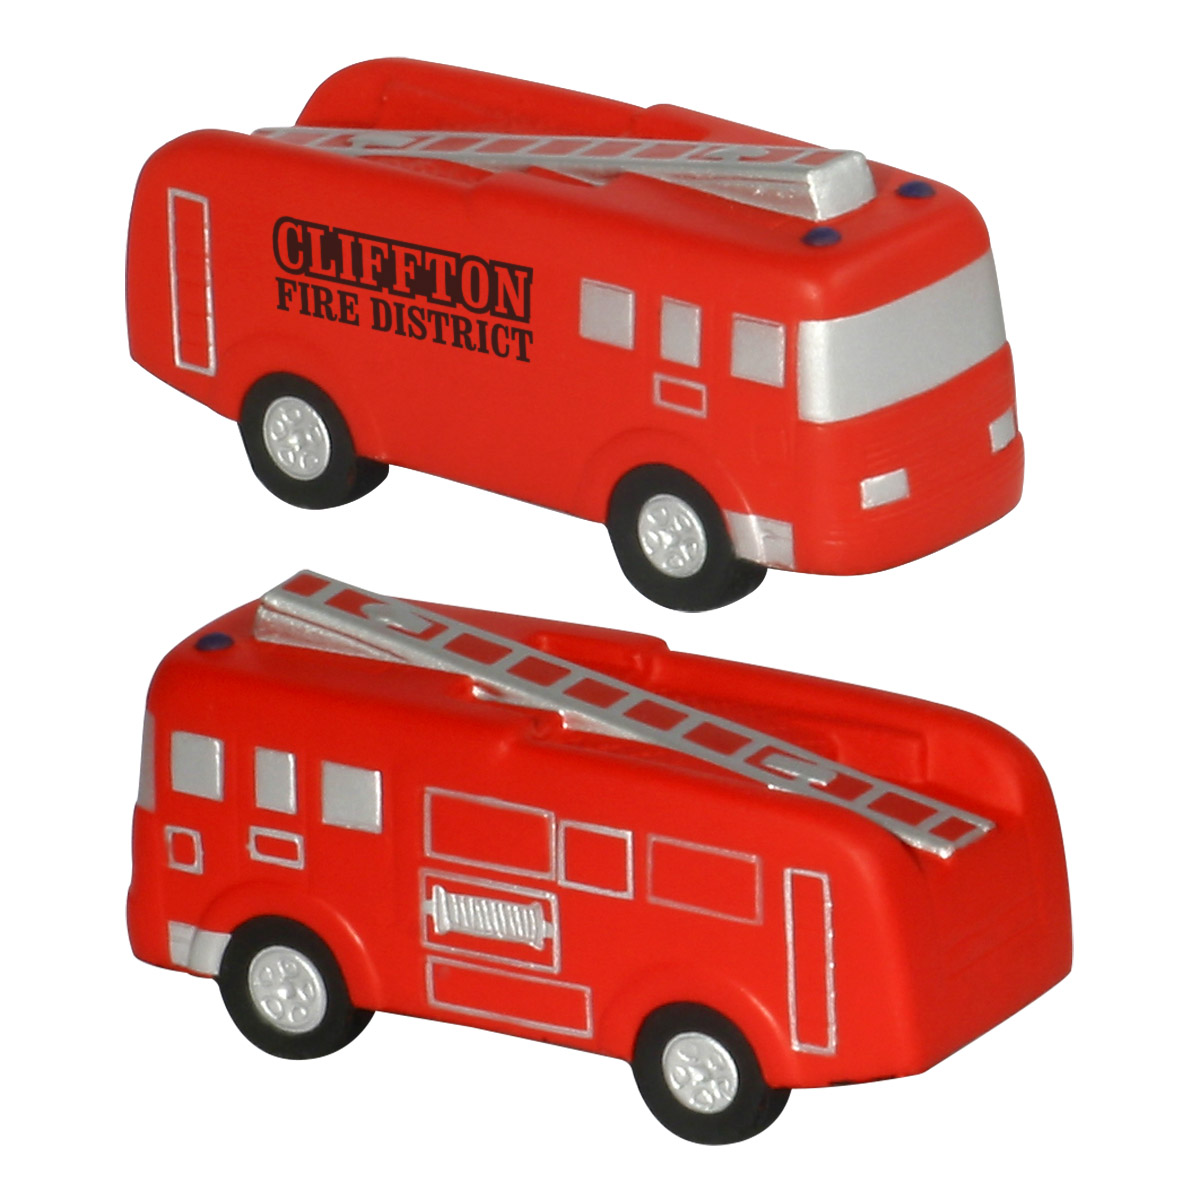 Fire Truck Stress Reliever, LCC-FT25, 1 Colour Imprint